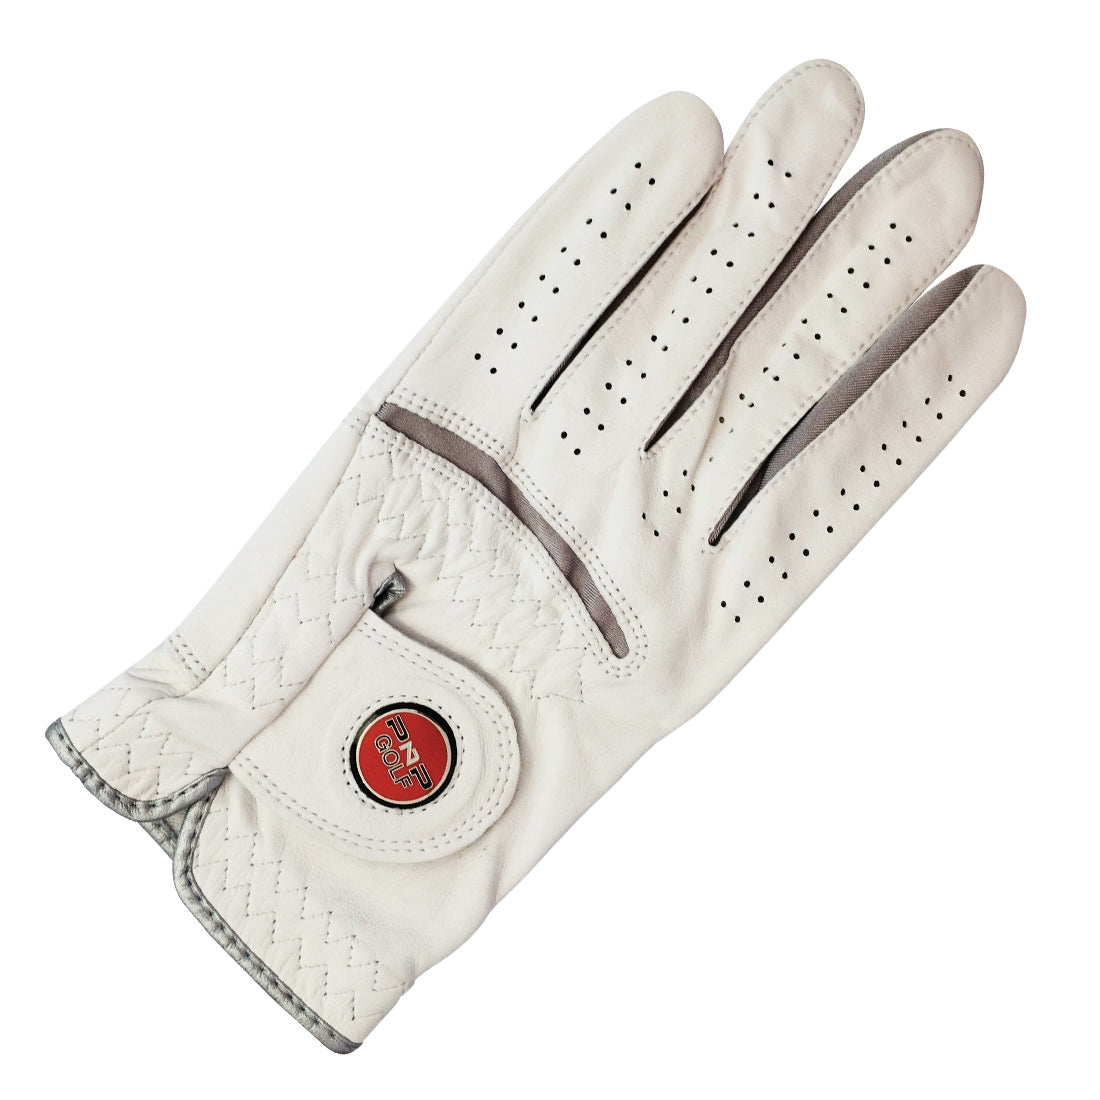 PnP Leather Golf Glove with Magnetic Ball Marker